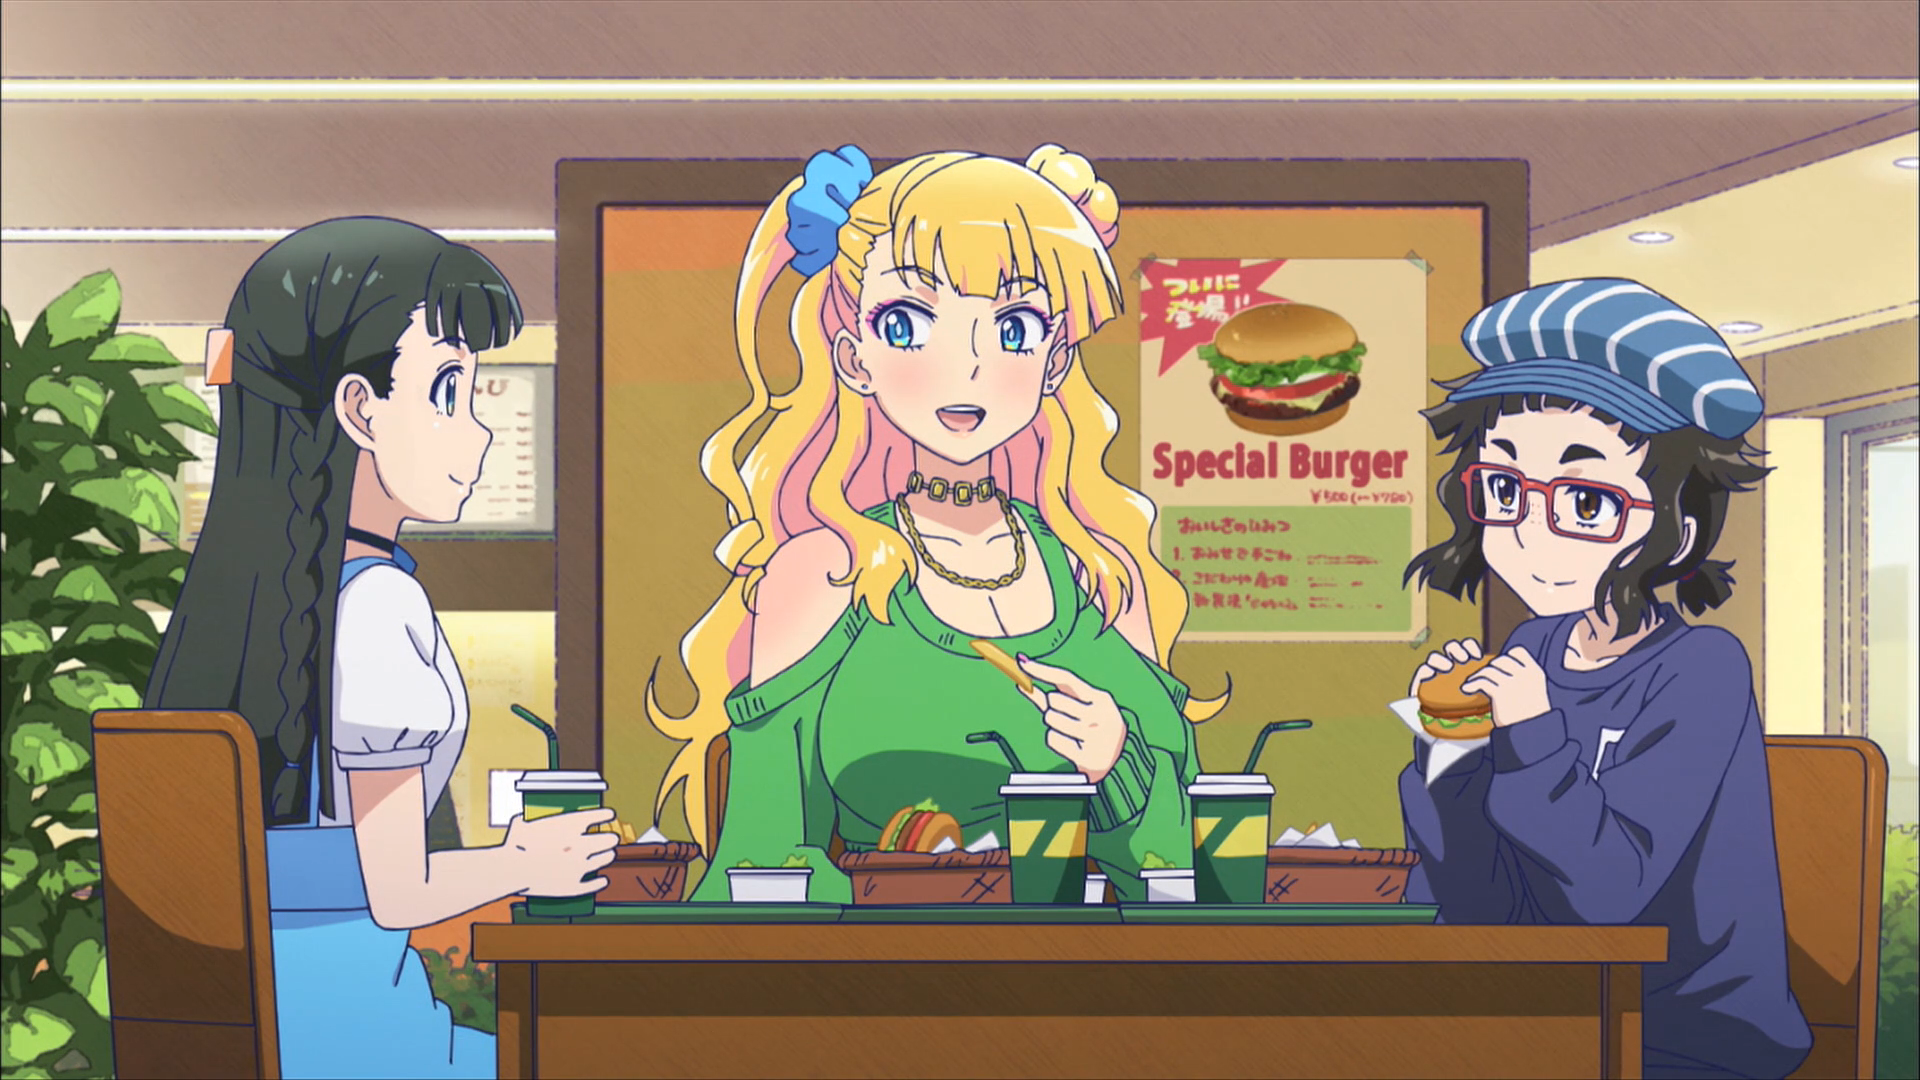 The three leads from Please Tell Me Galko-chan eating lunch together at a burger restaurant